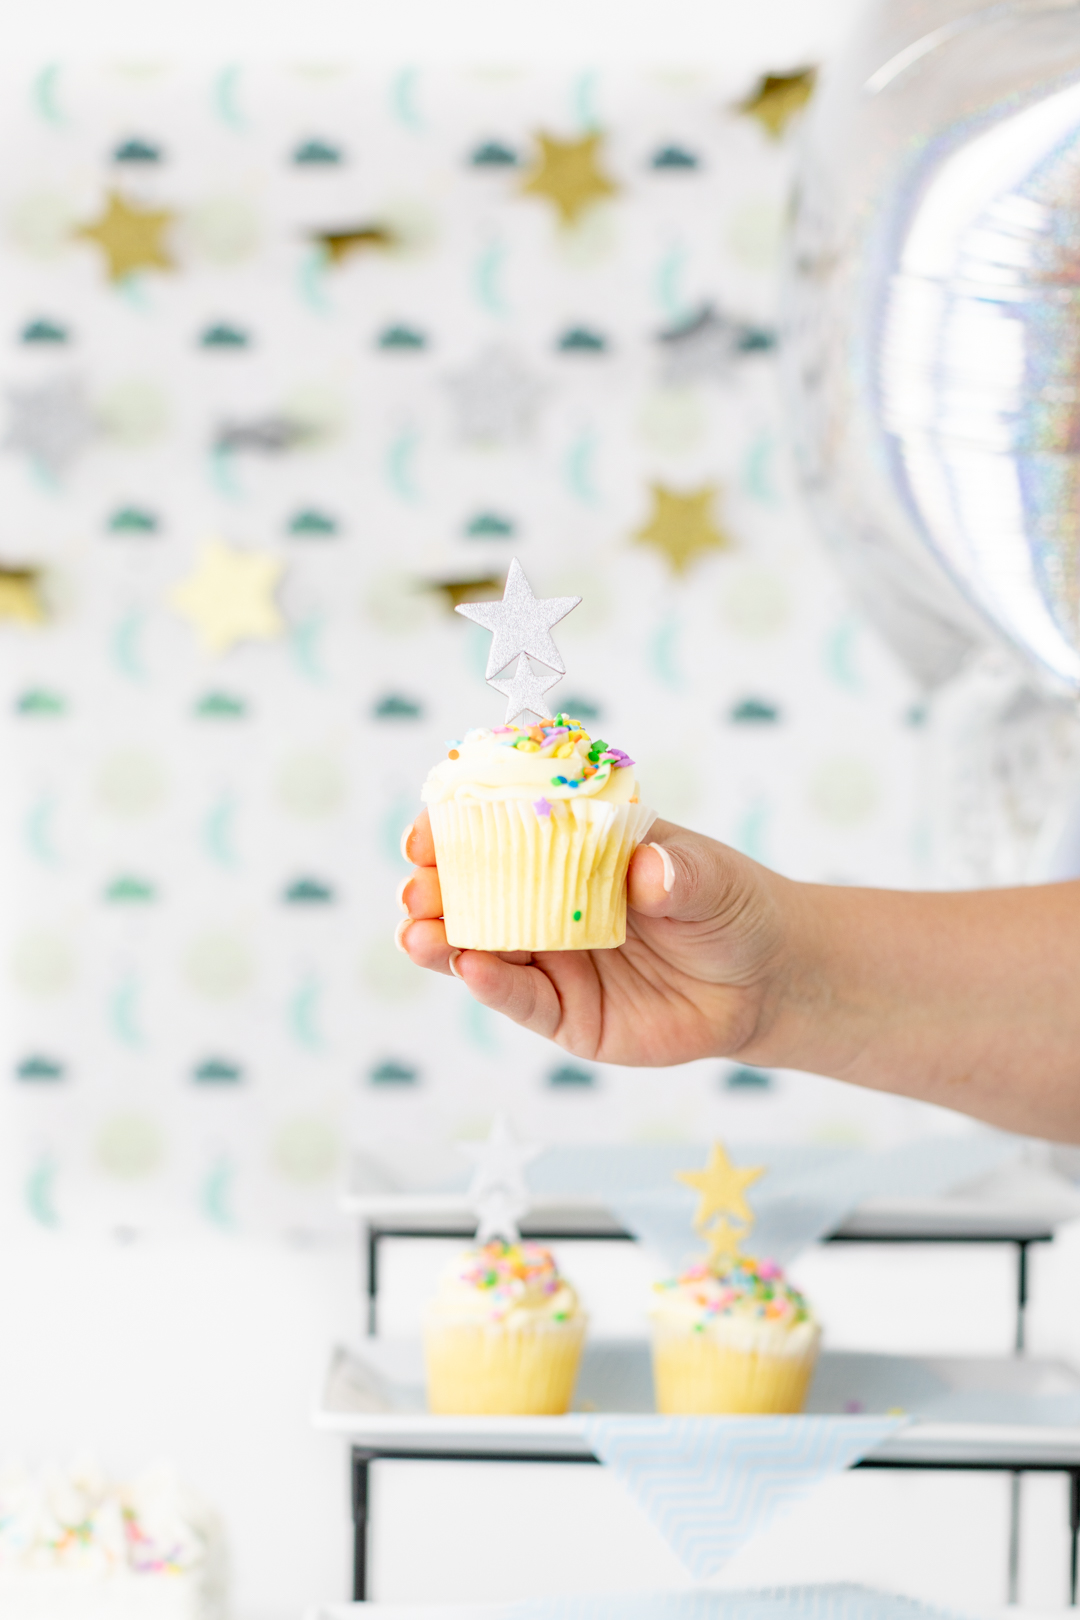 star cupcake in hand